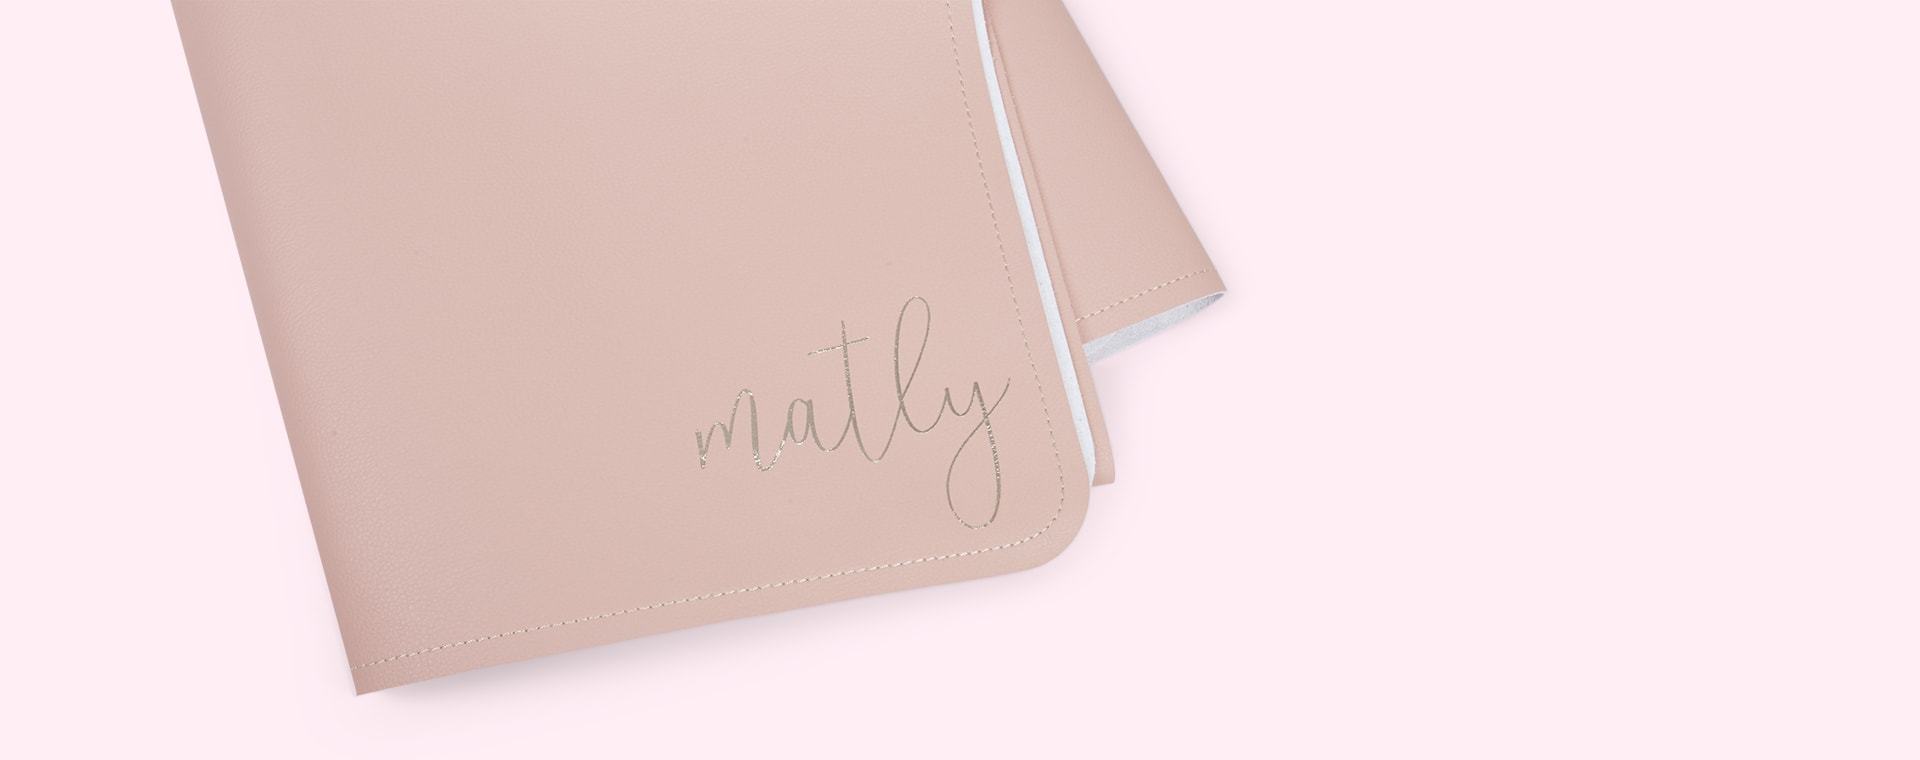 Blossom Matly Original Mat